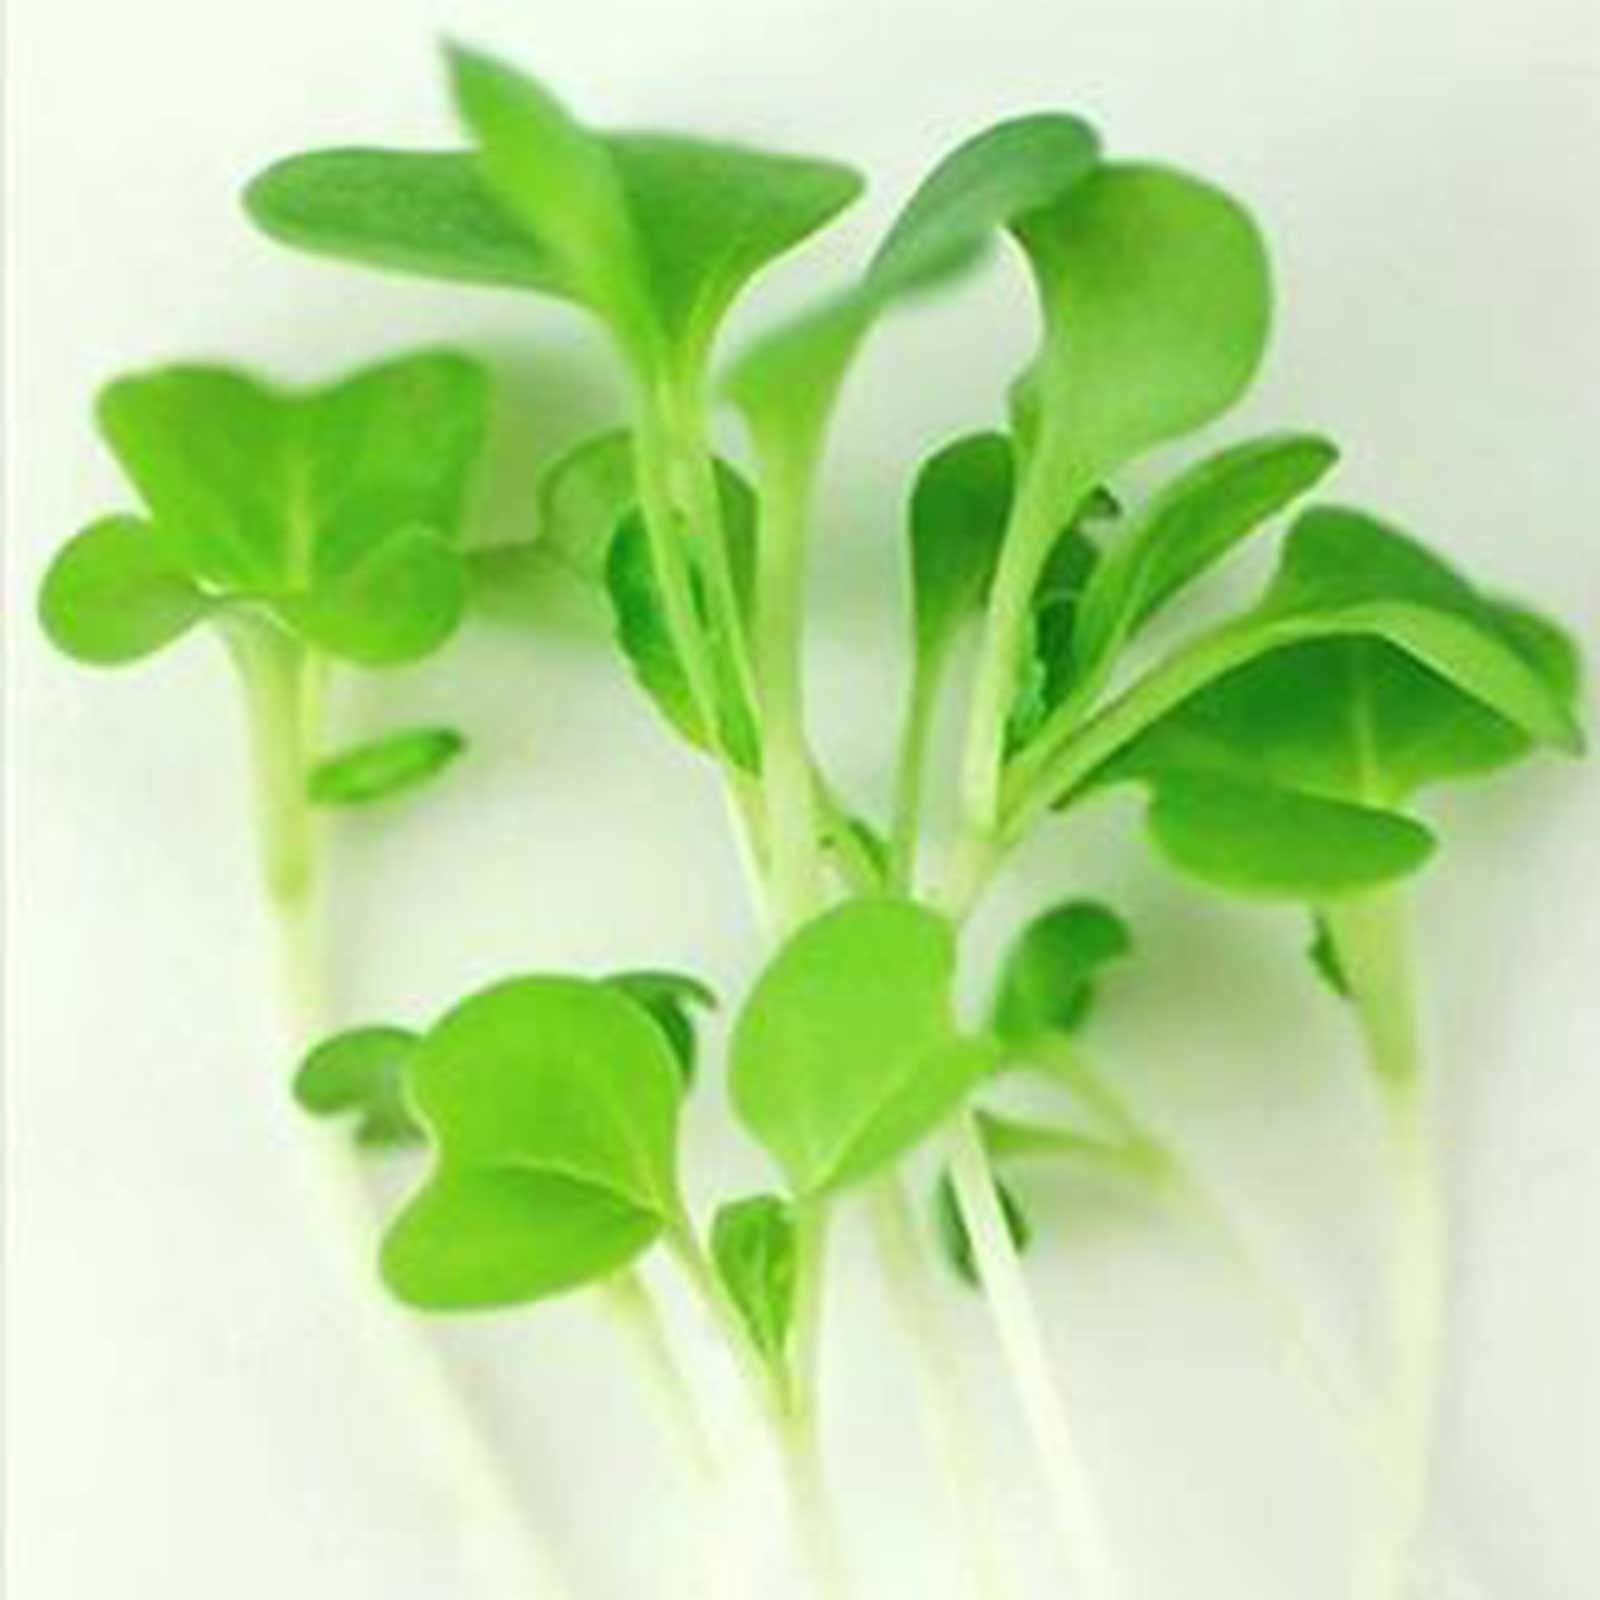 Deluxe Exotic Microgreens Seed Assortment | 12 Non GMO Varieties Including Chia Tatsoi, Pak Choi, Cress And More | Add Some Exotic Highlights To Your Cooking by Handy Pantry (Image #5)